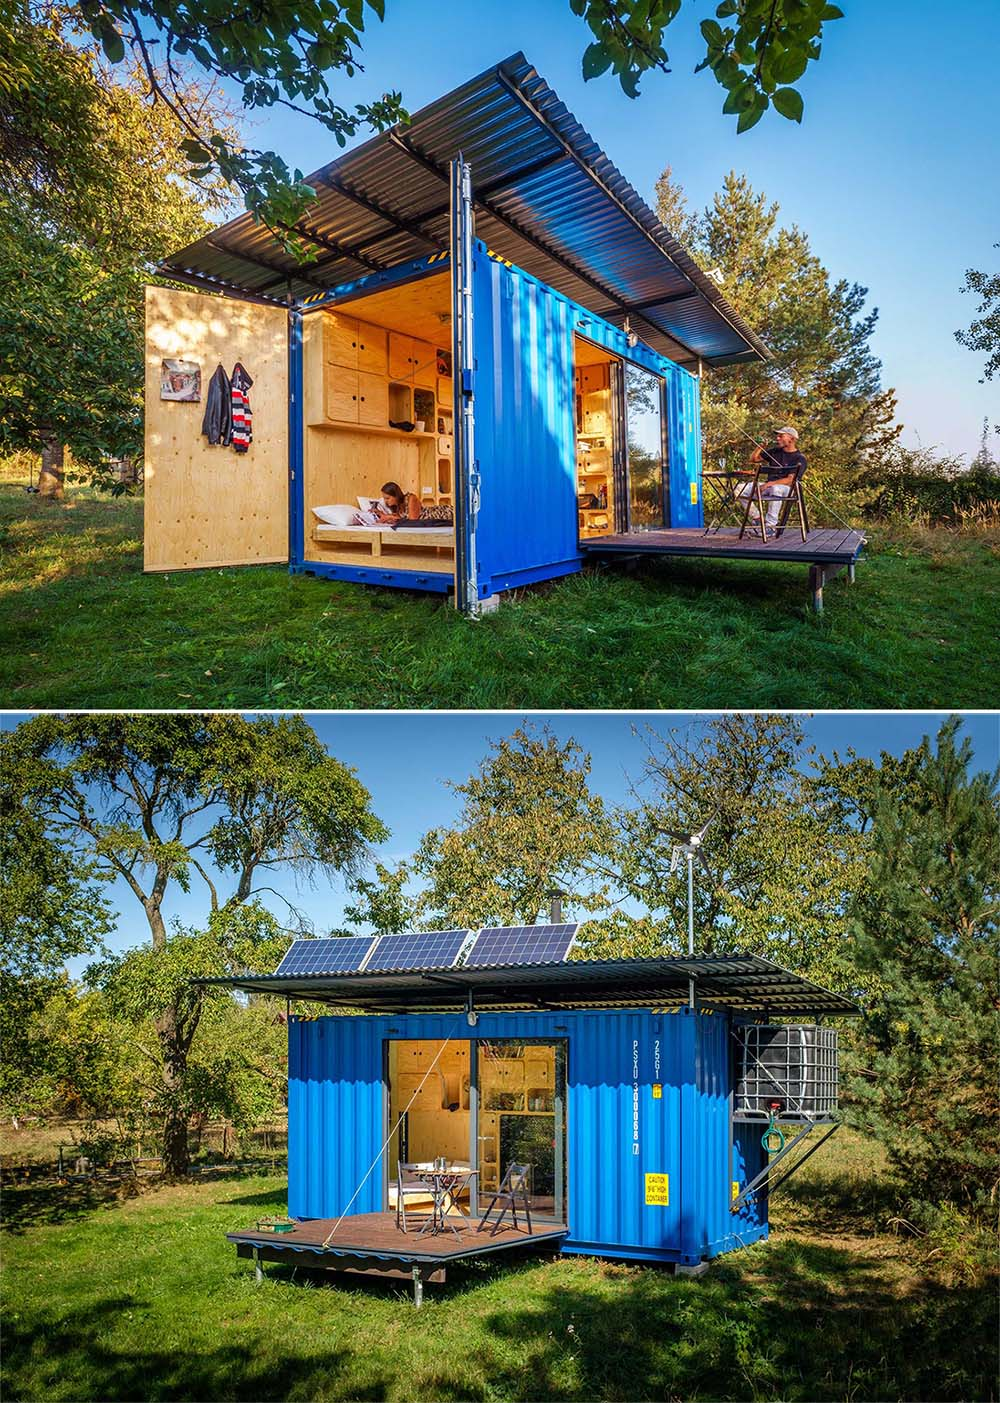 An off-grid tiny home made from a small shipping container that includes a fold out bed, solar panels, a small kitchen, and bathroom.